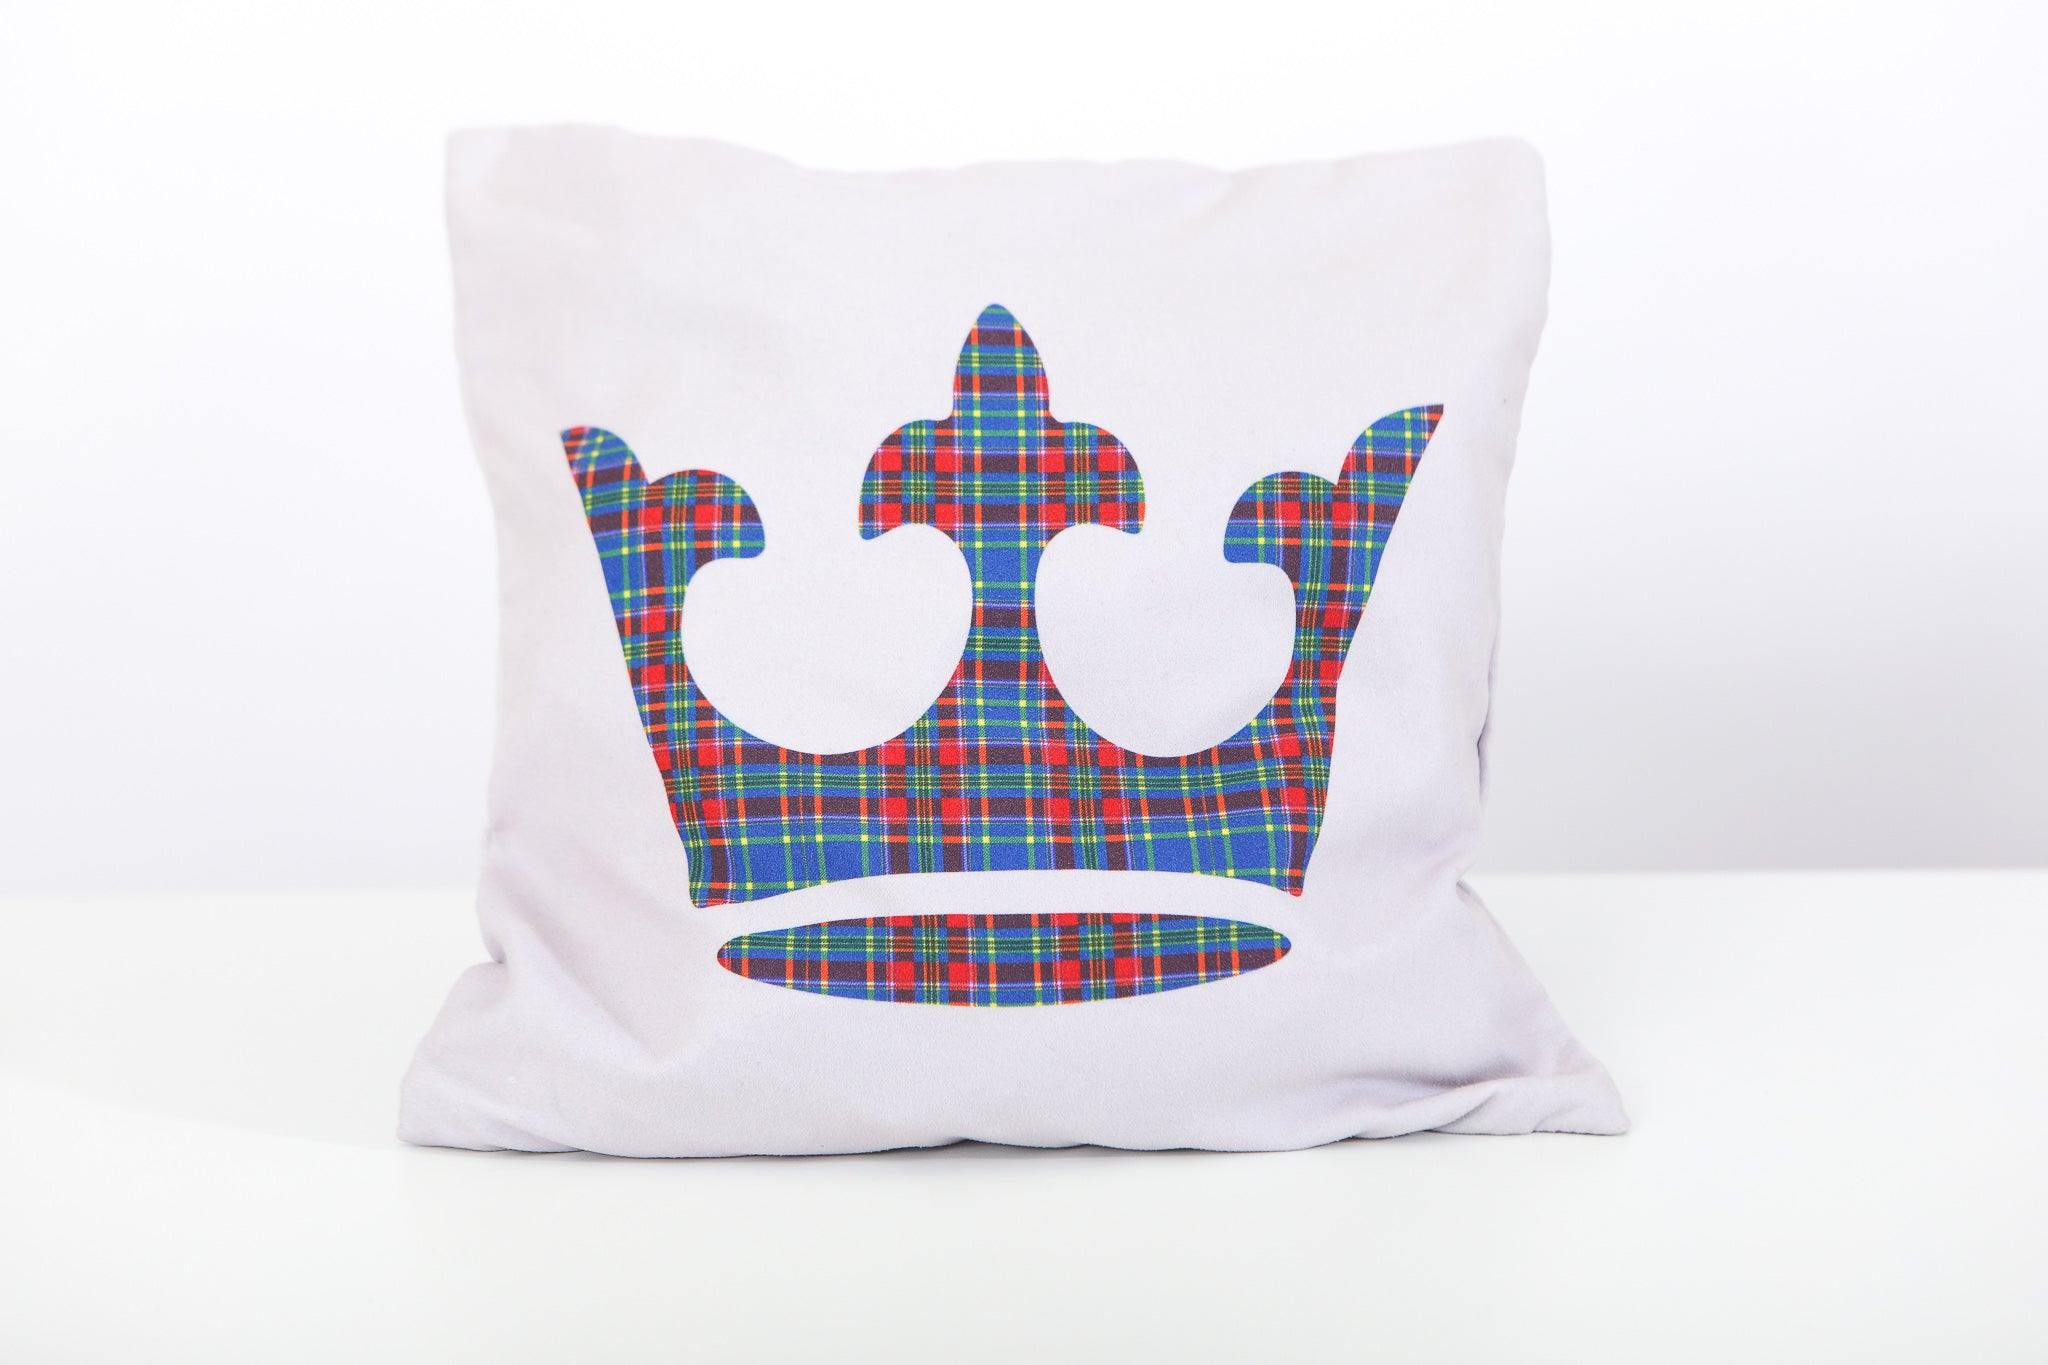 Design option 2: Large tartan crown on white pillowcase